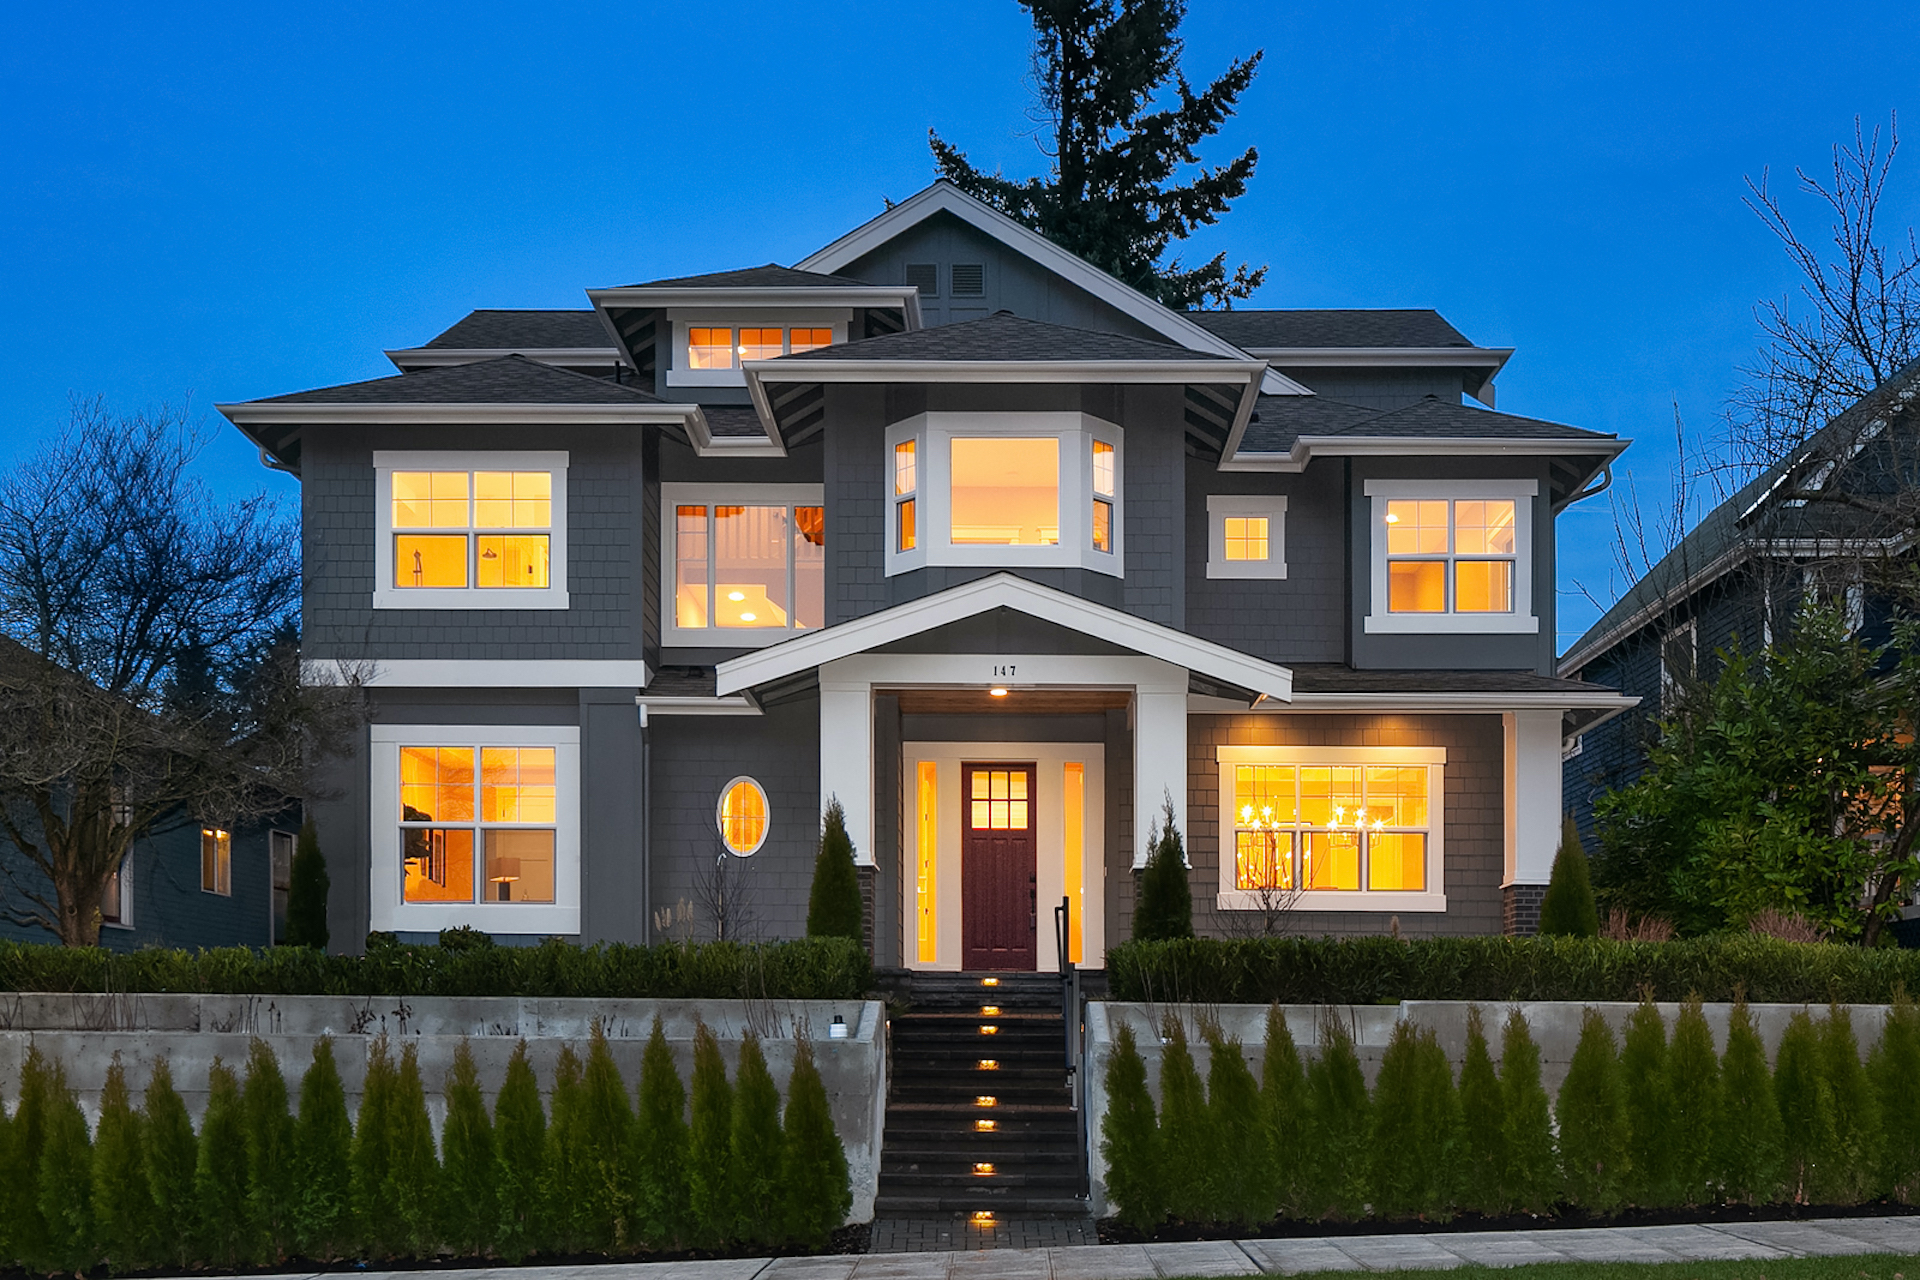 Kensington Home with 6 Bedrooms